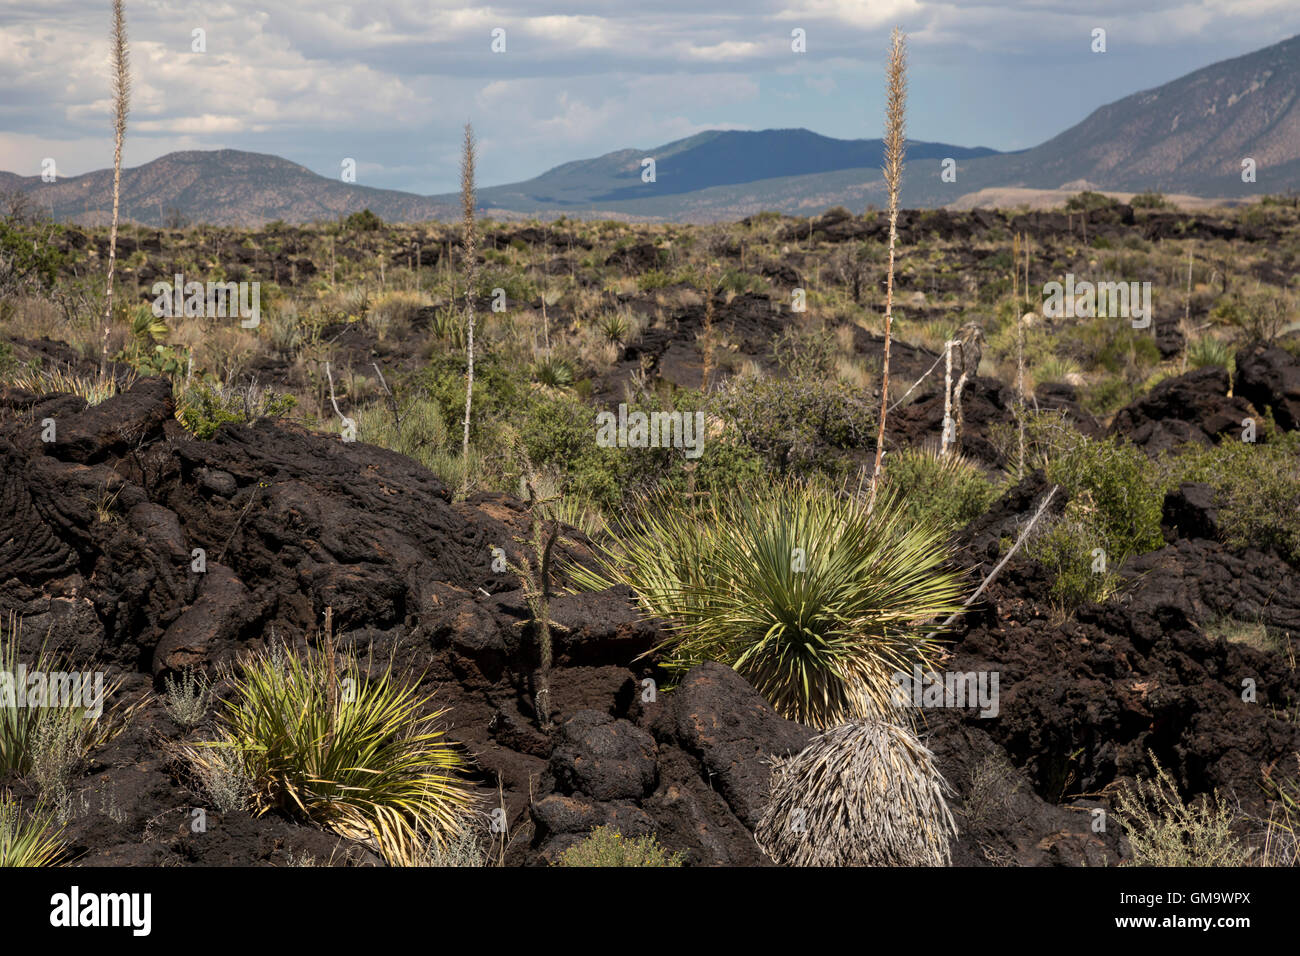 Carrizozo, New Mexico - The Malpais Lava Flow at the Valley of Fires Recreation Area. The lava flow is the result - Stock Image